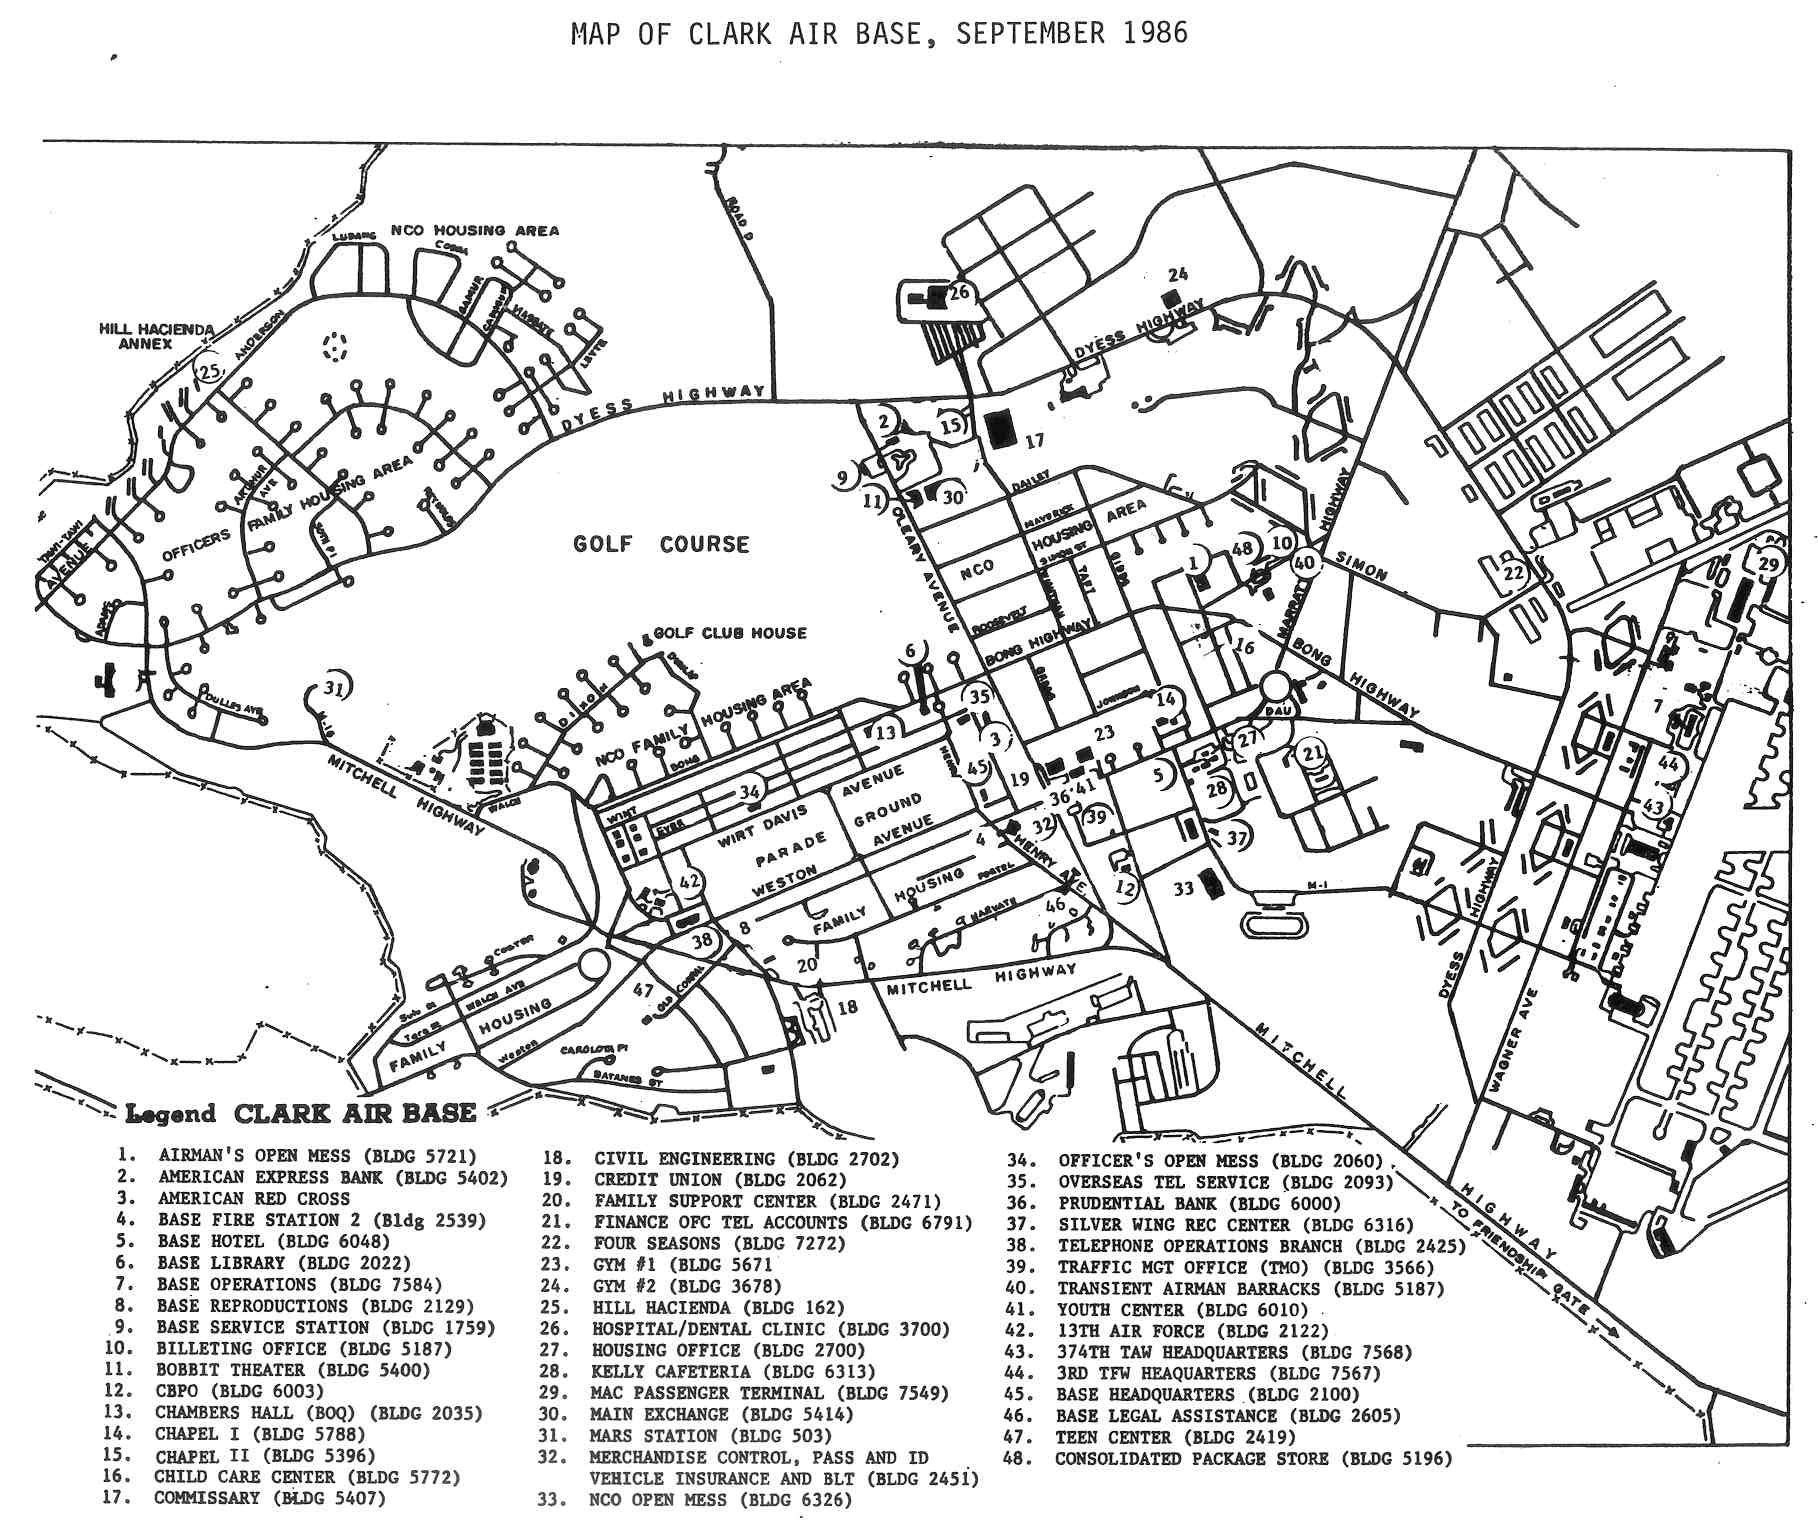 Philippines -- Clark Air Base Maps, Charts, and Blueprints